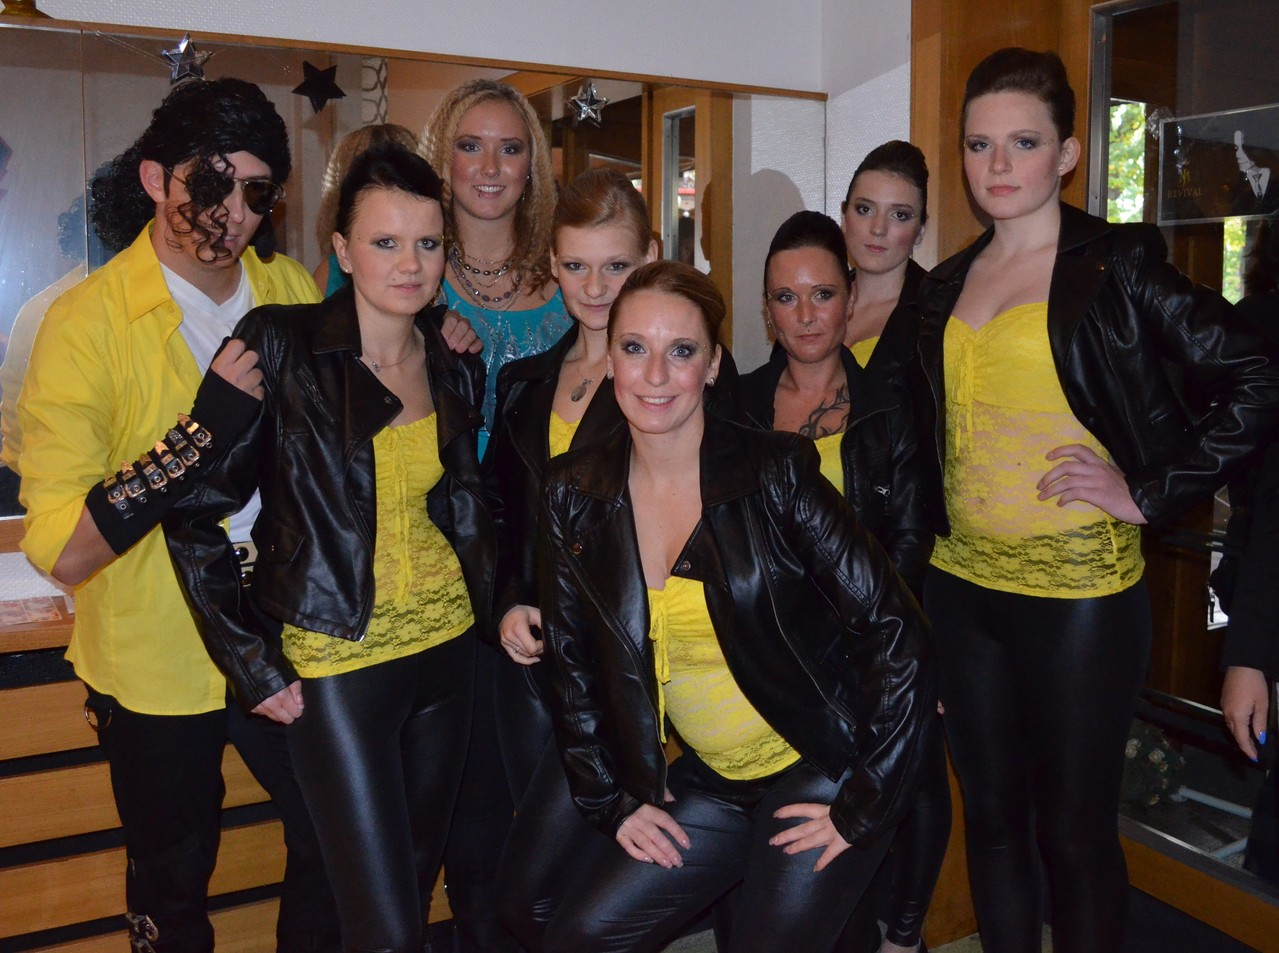 hier beim MJ-Revival in Borgsdorf